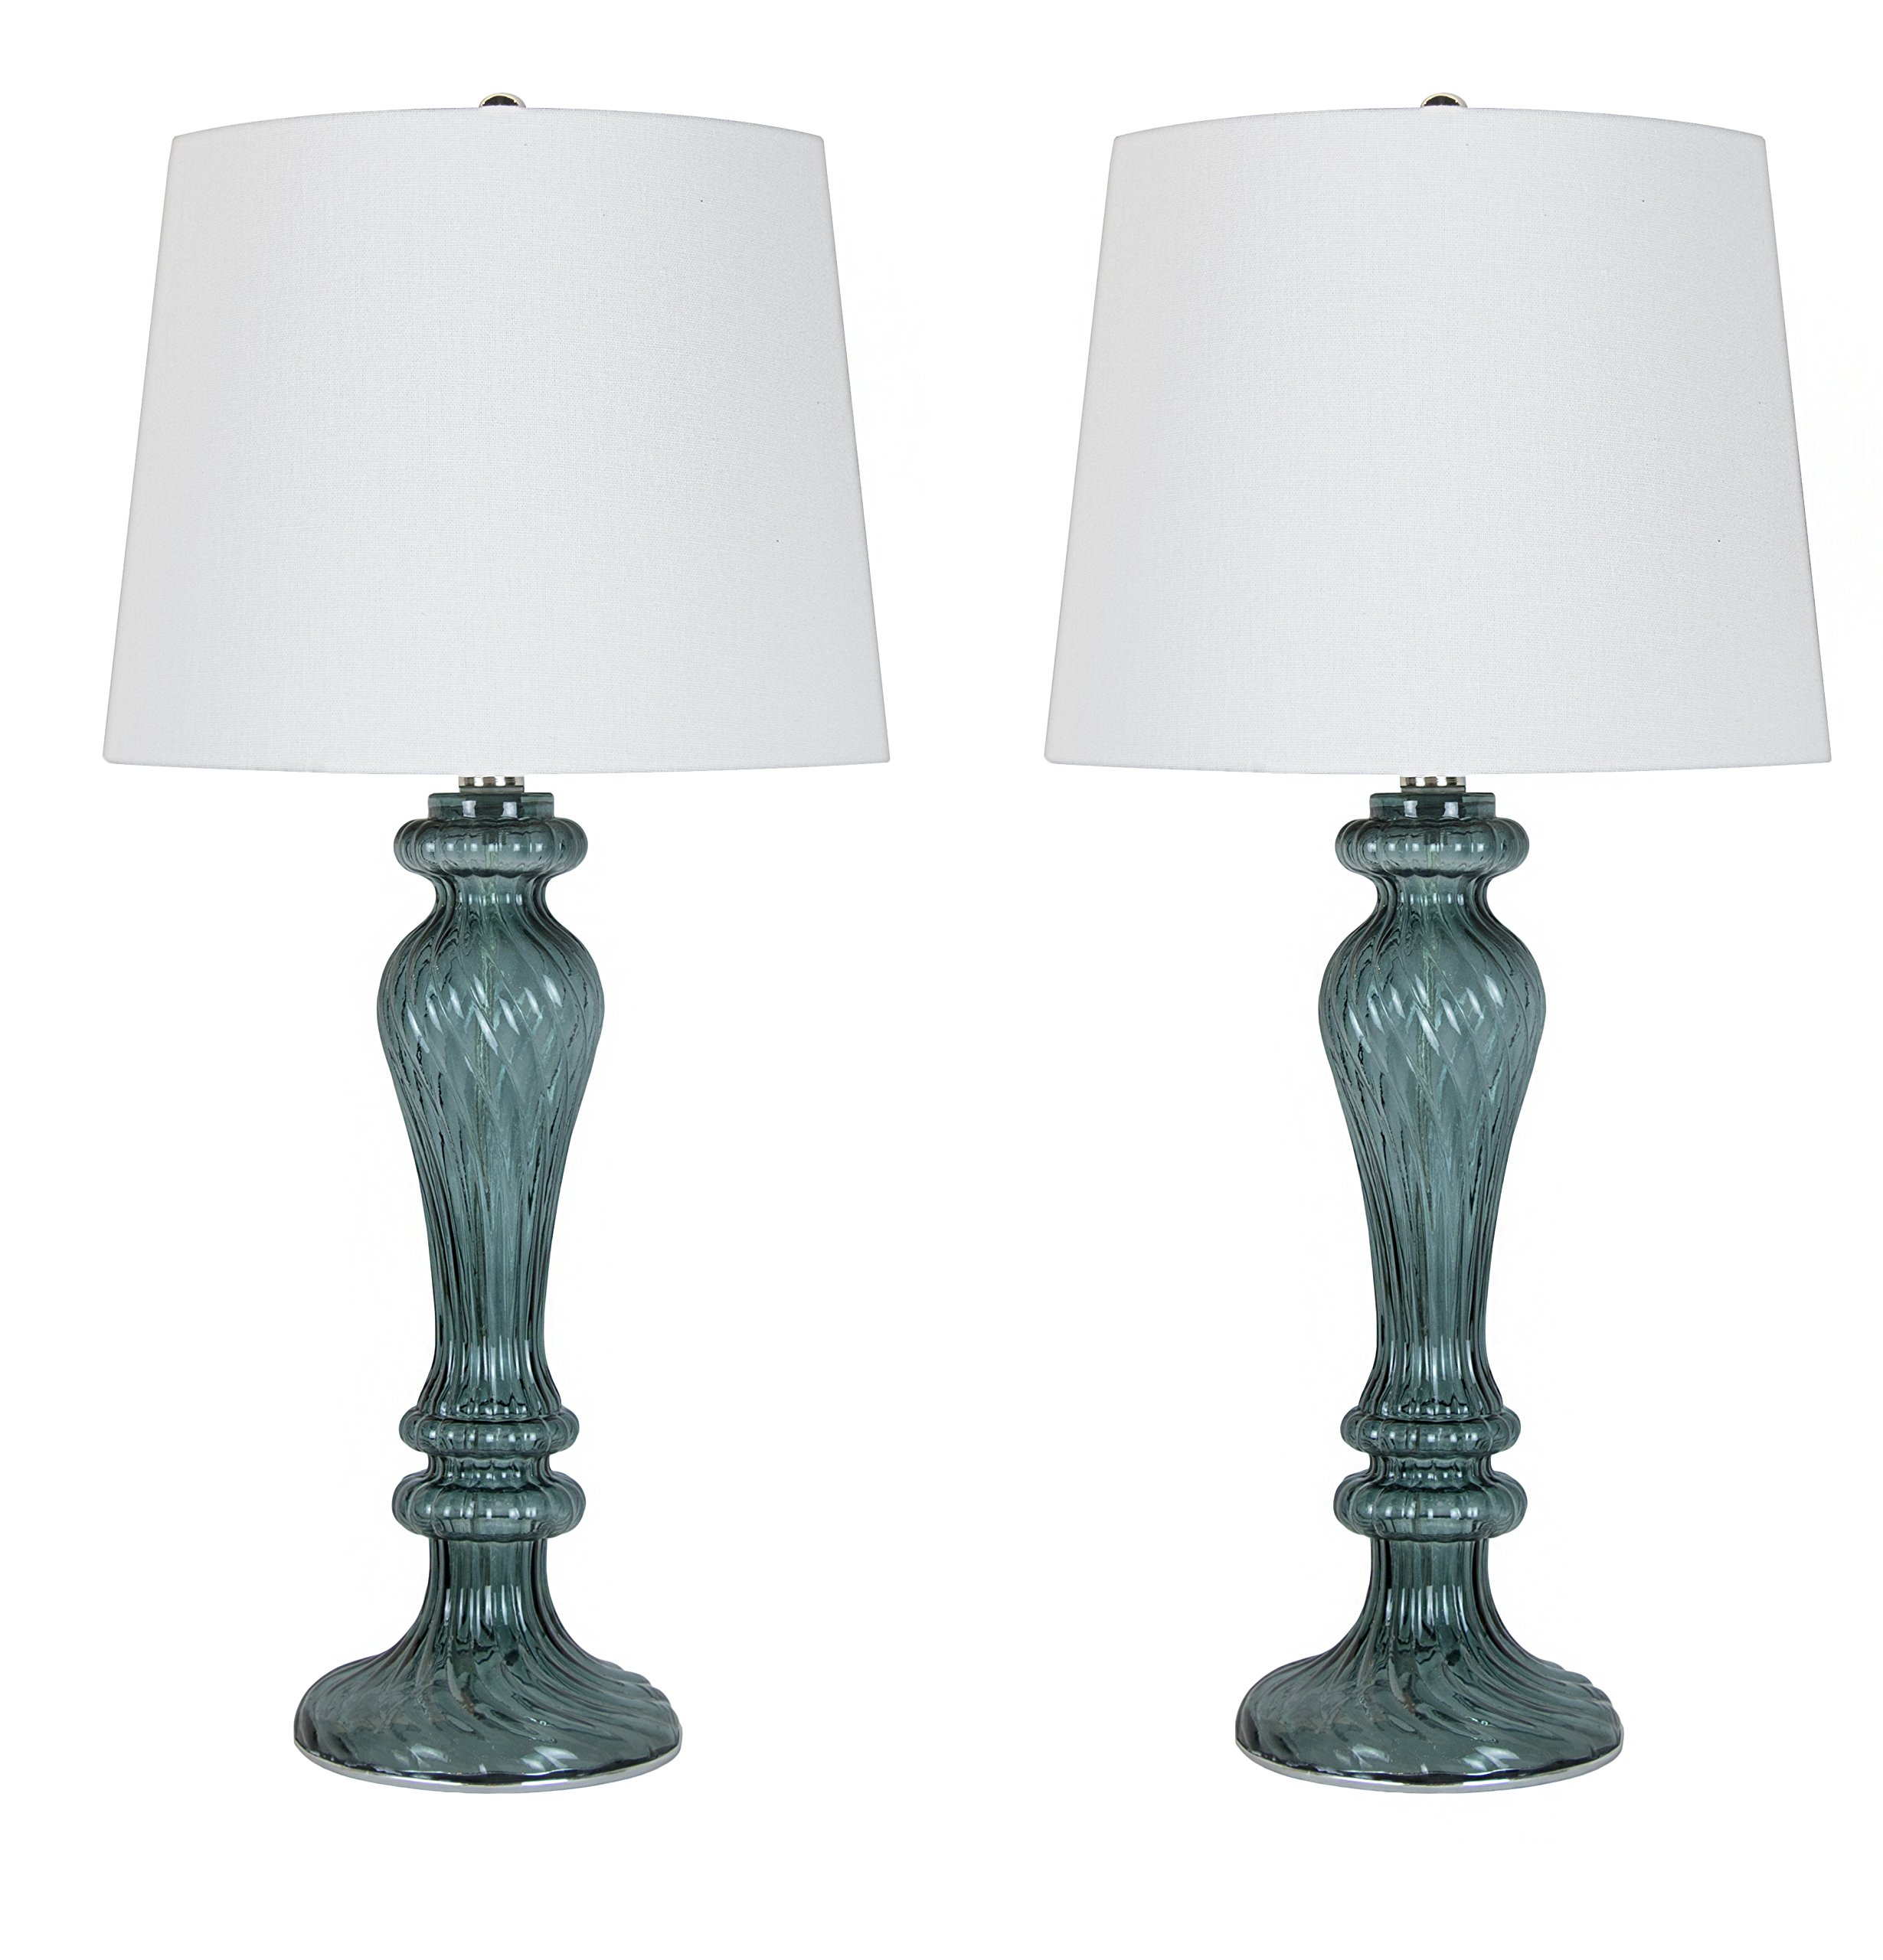 Grandview Gallery GT90496K-(W)-(DP) 25.5'' Glass Table Lamps (Set of 2), 50 Piece by Grandview Gallery